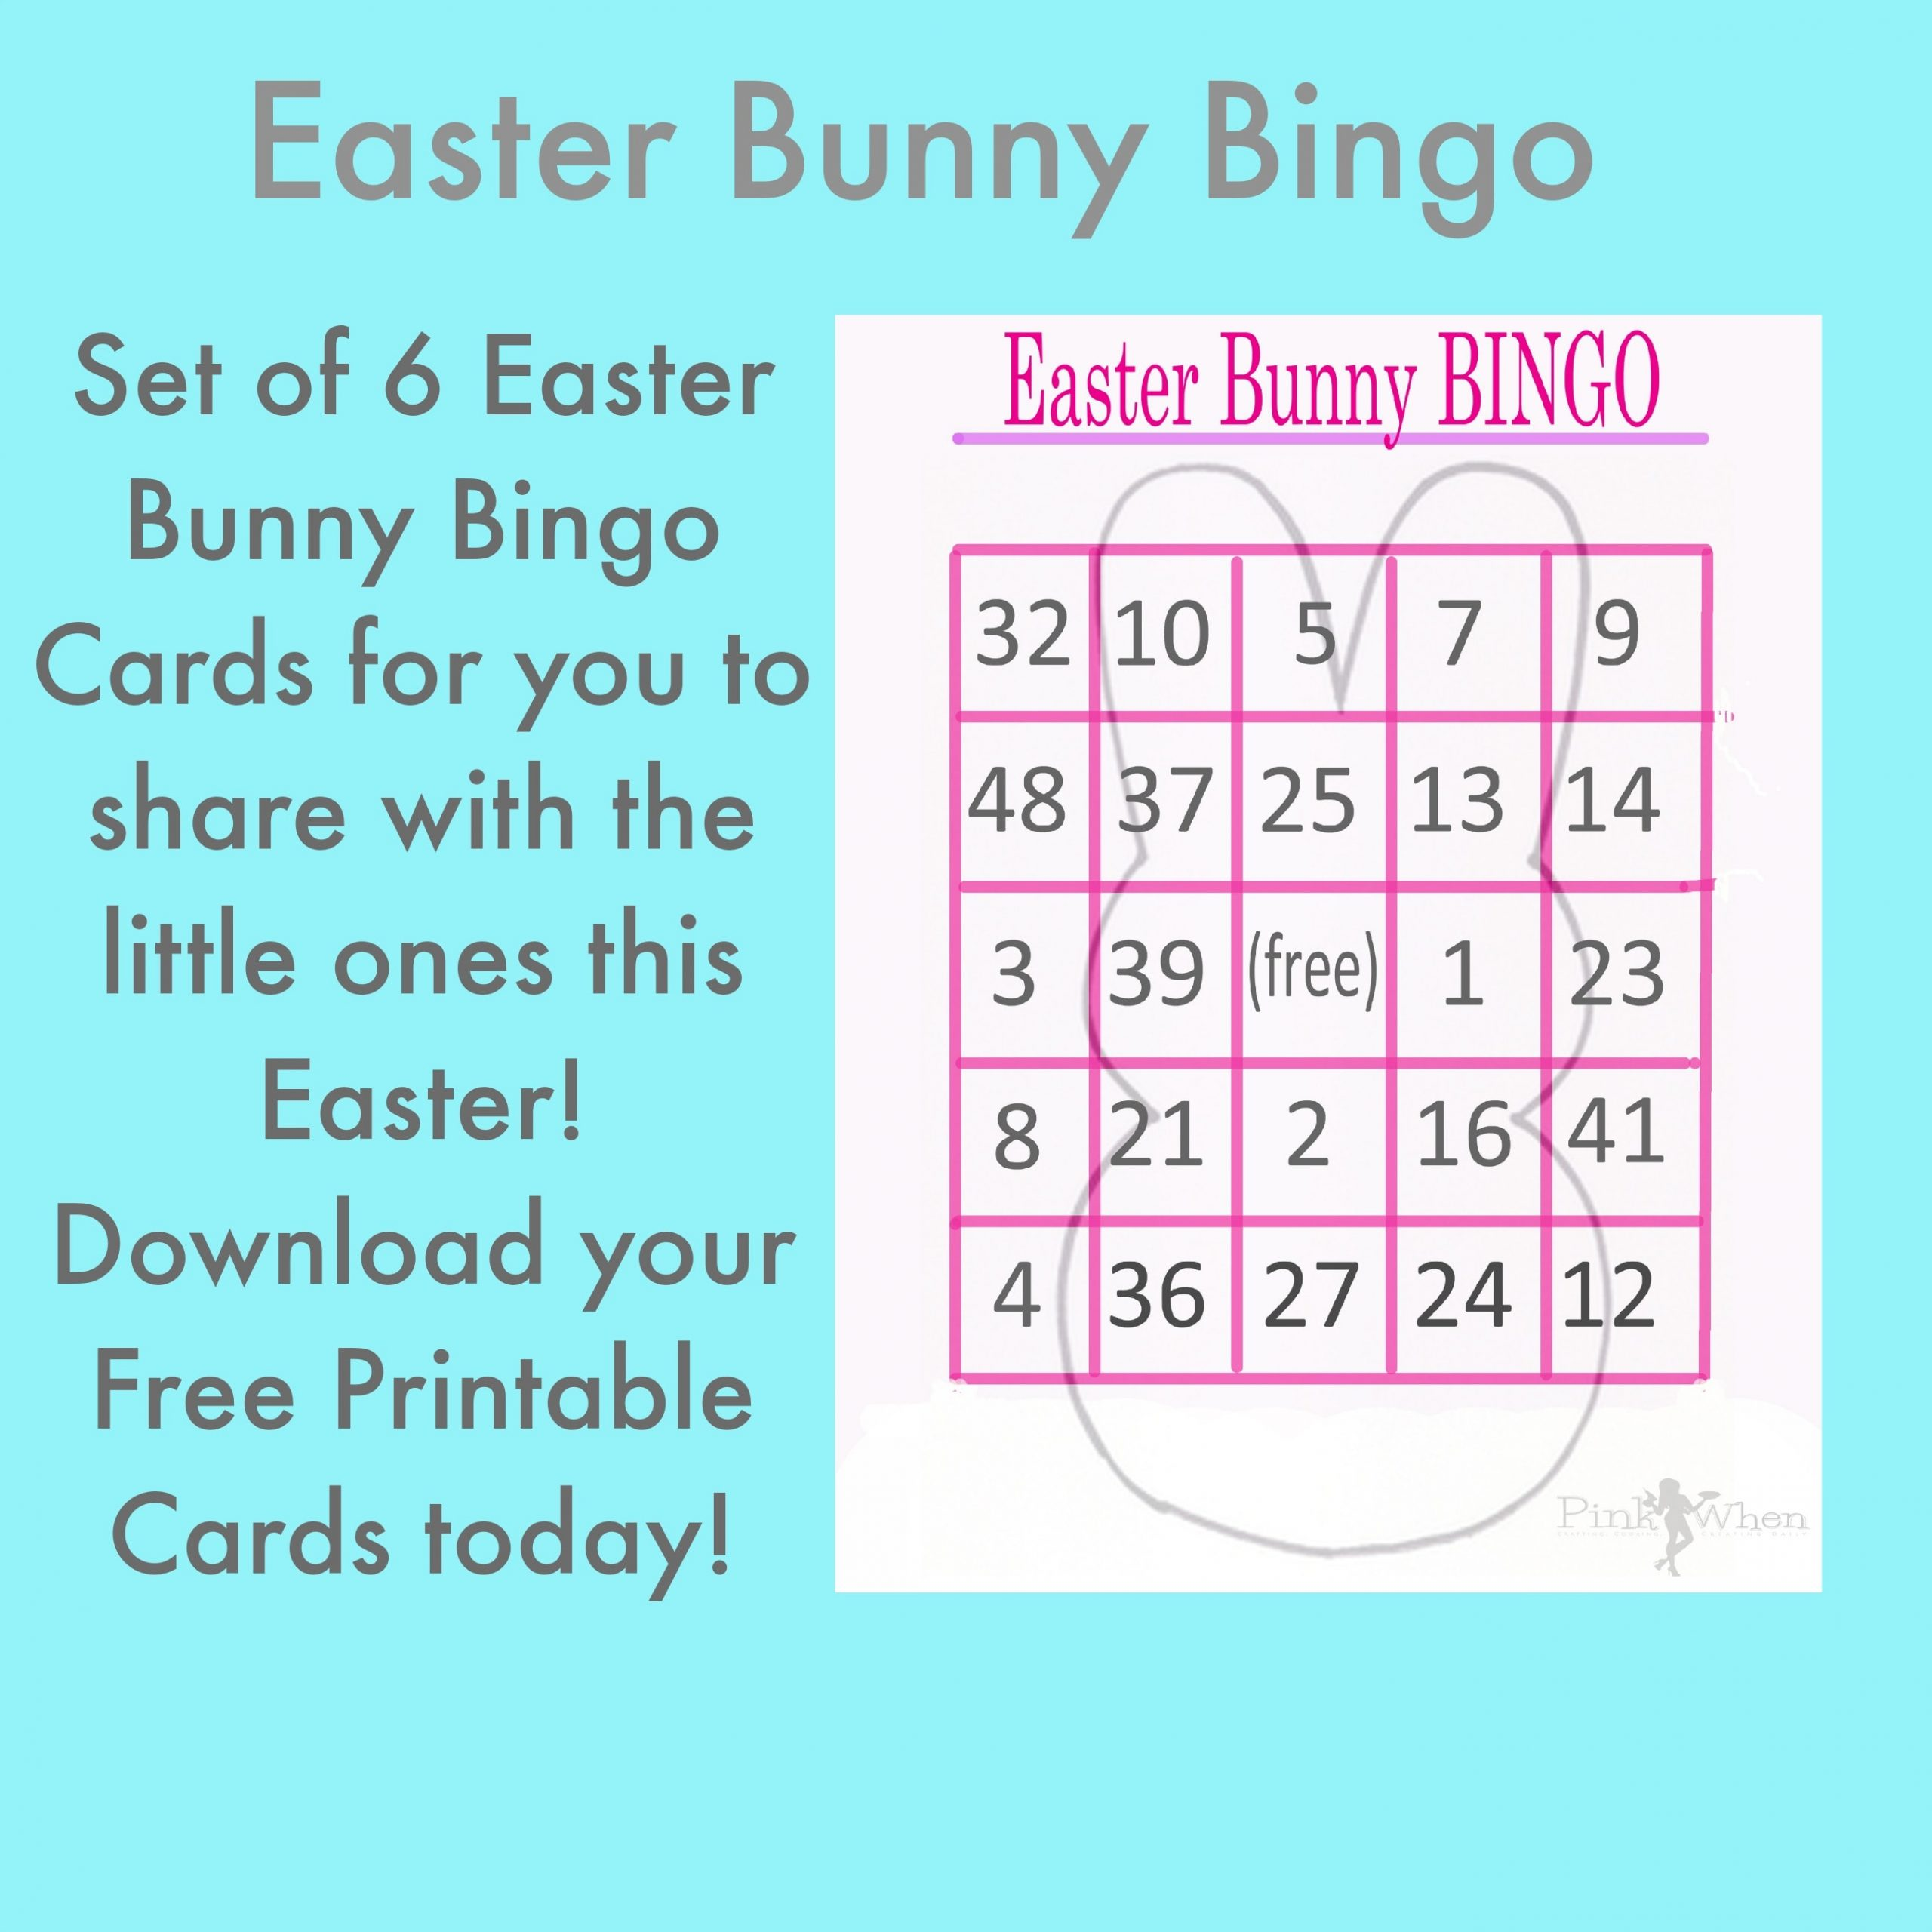 This is a photo of Ambitious Printable Easter Bingo Cards